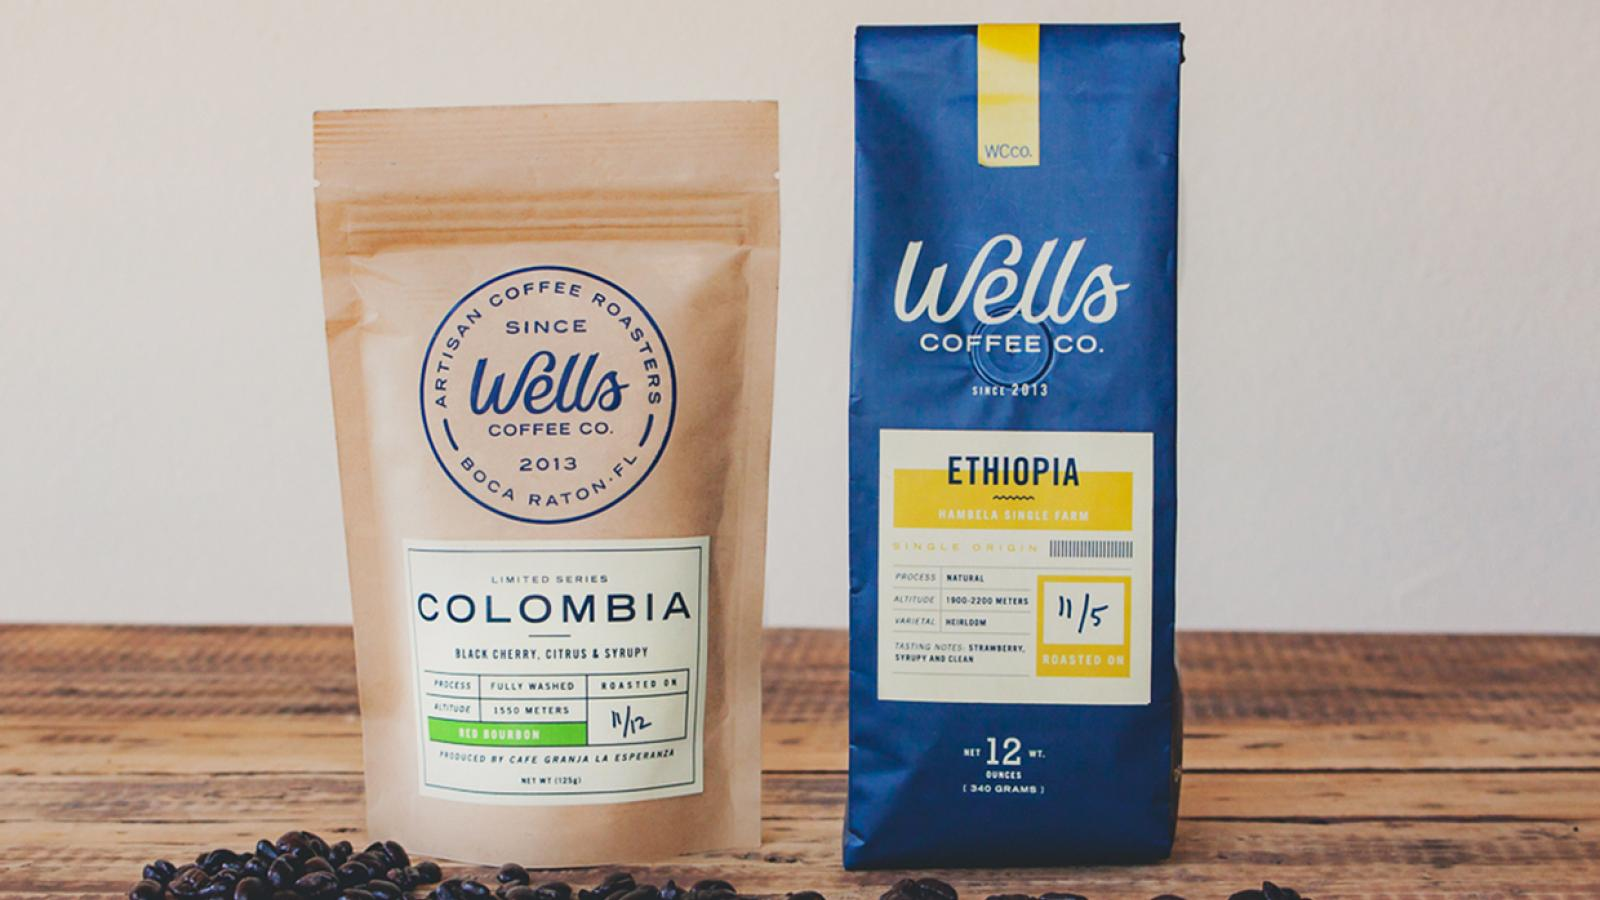 Wells Coffee Packaging Design